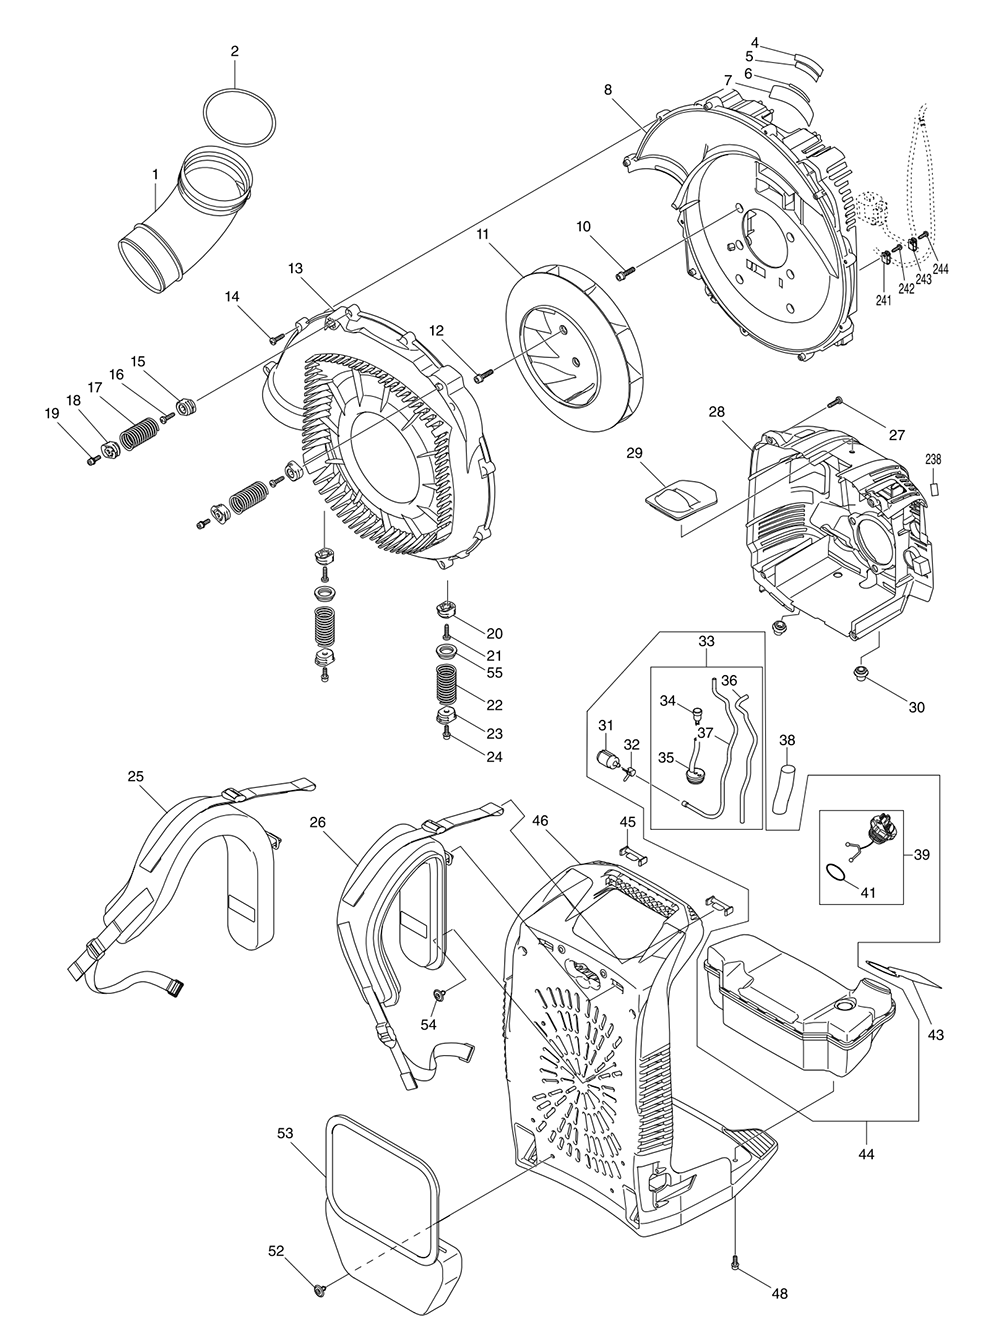 Jet Jbj2 Parts List And Diagram Ereplacementpartscom